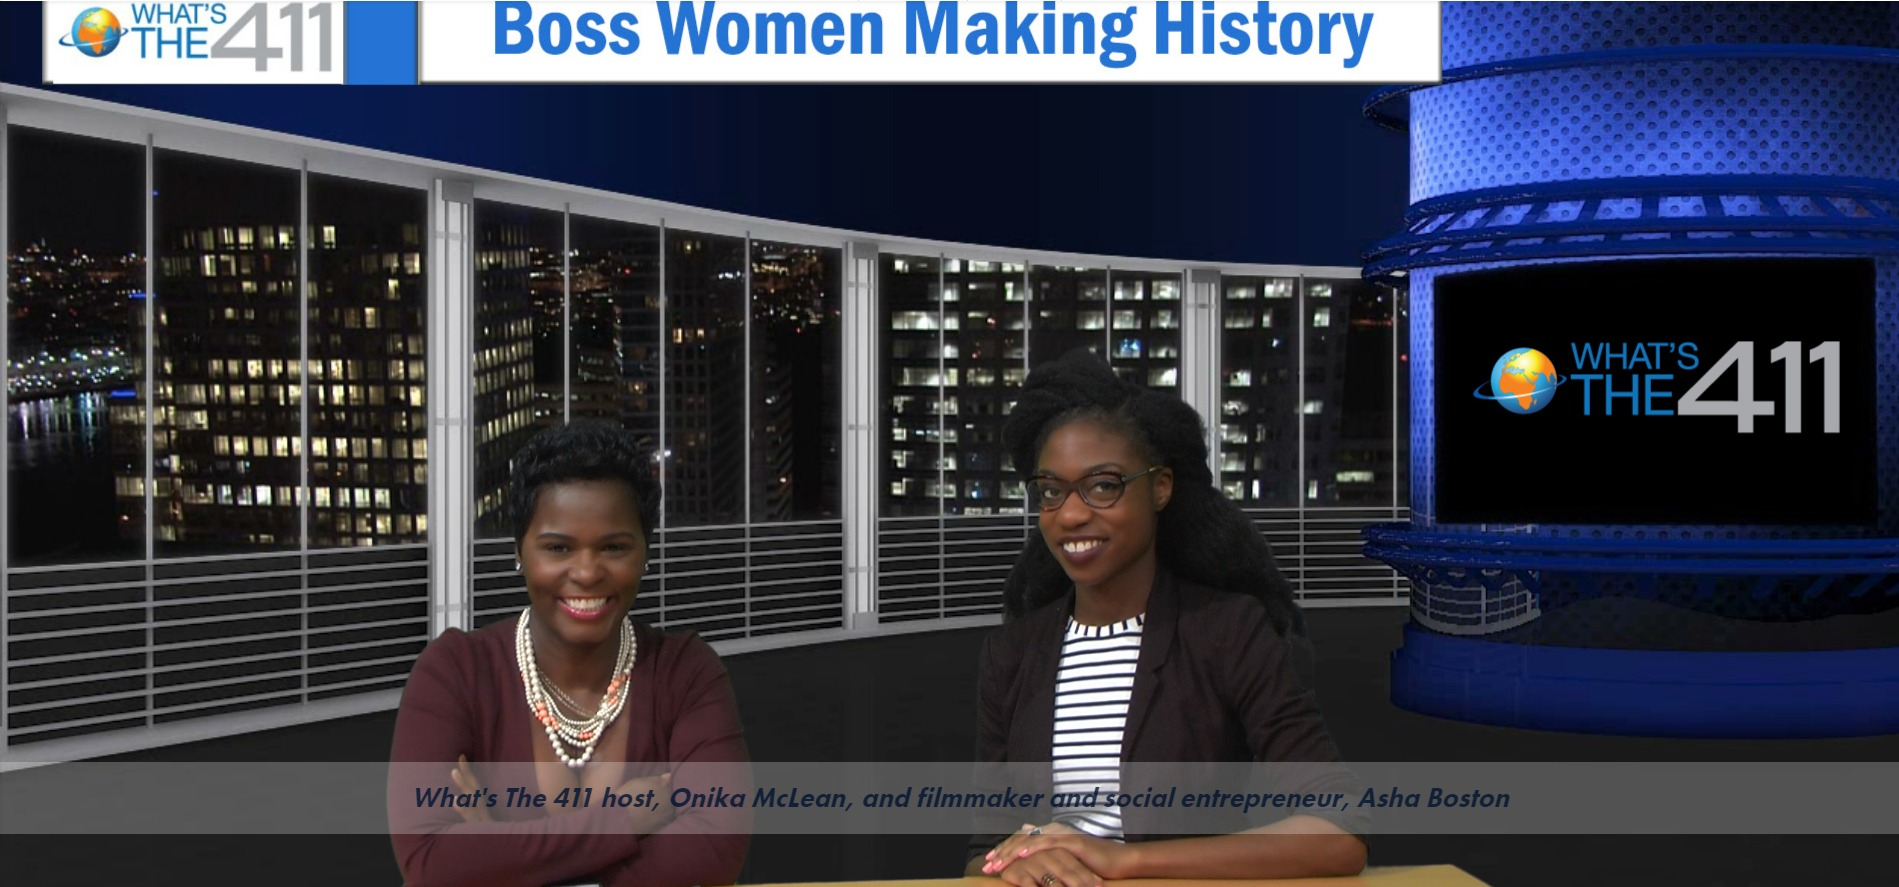 What's the 411 co-host, Onika McLean, interviewing millennial entrepreneur Asha Boston